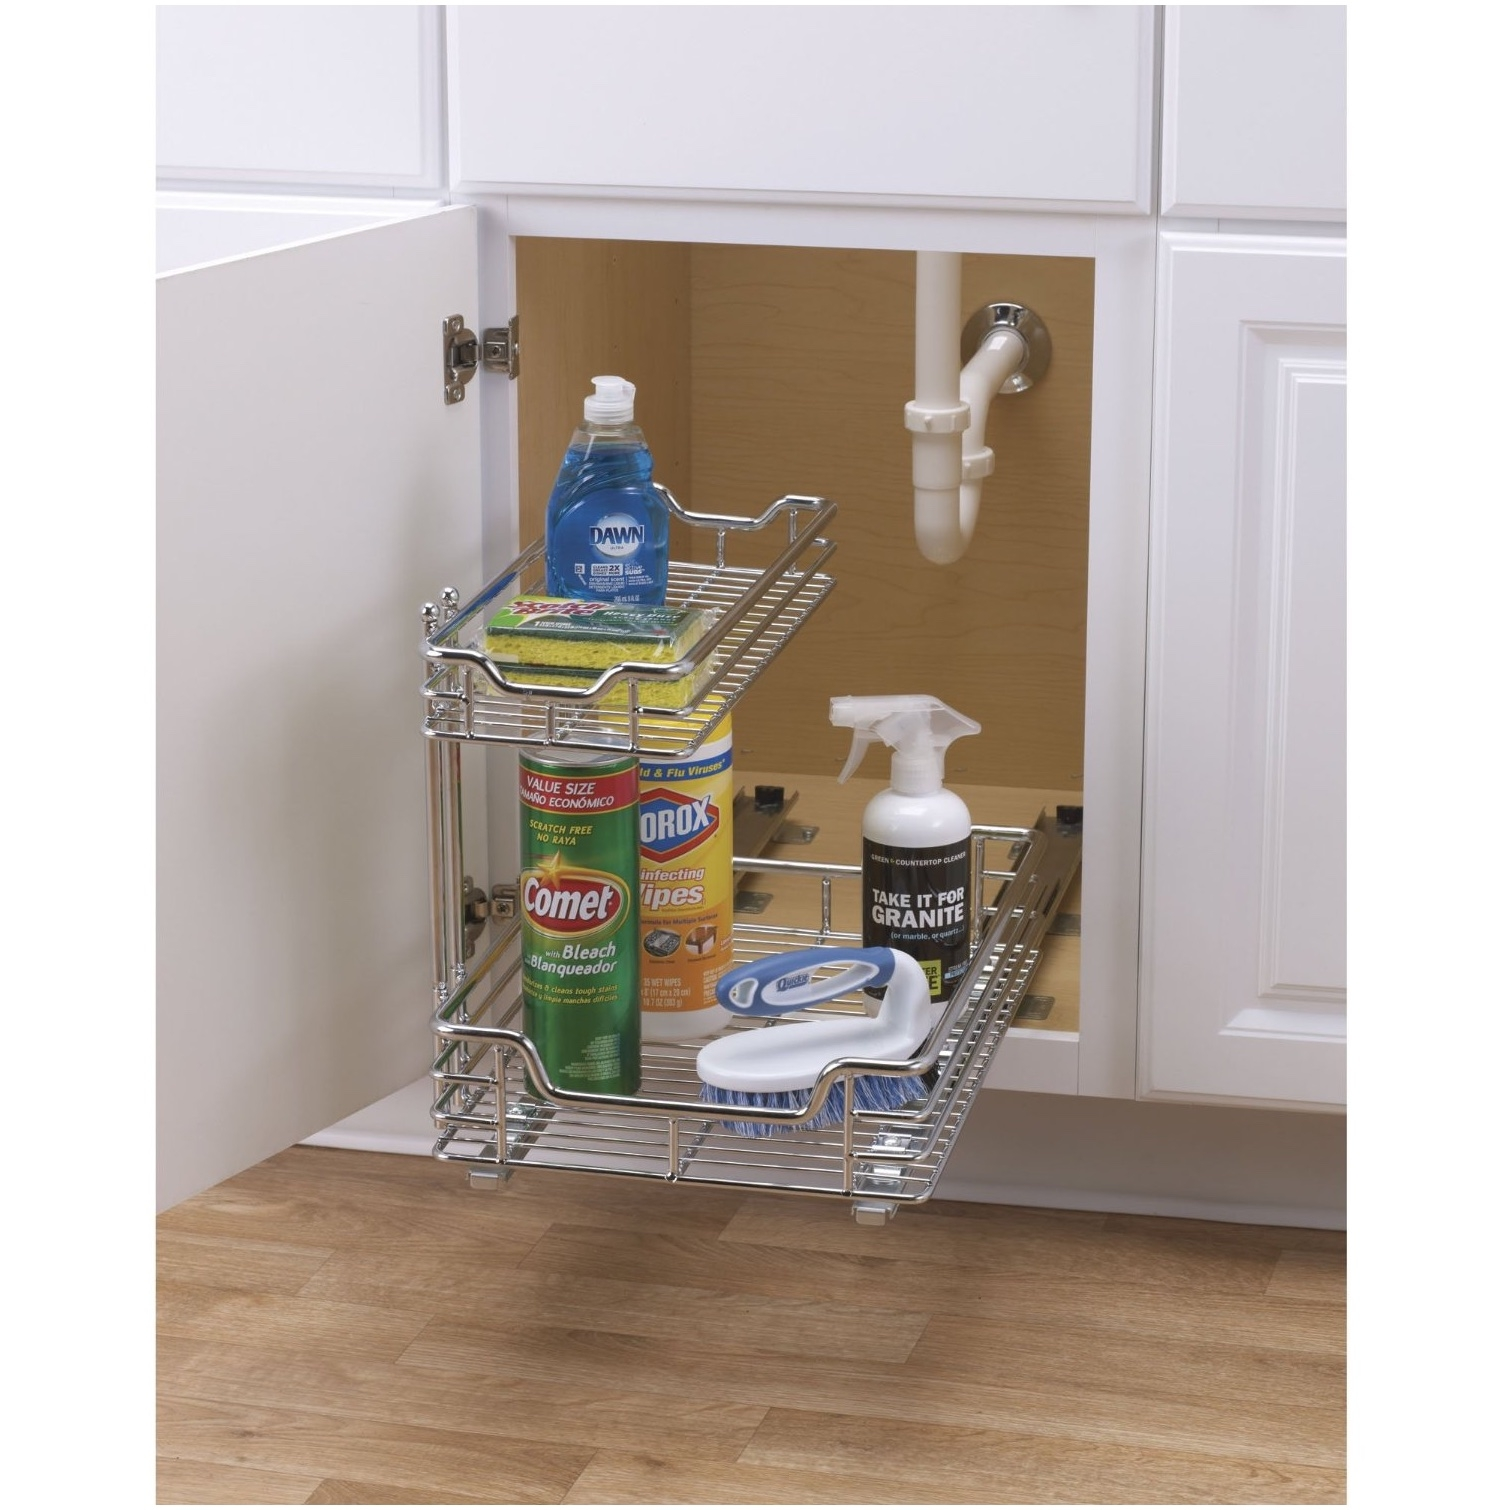 Under Cabinet Storage Racksunder cabinet storage racks 1 pcs new kitchen under shelf under